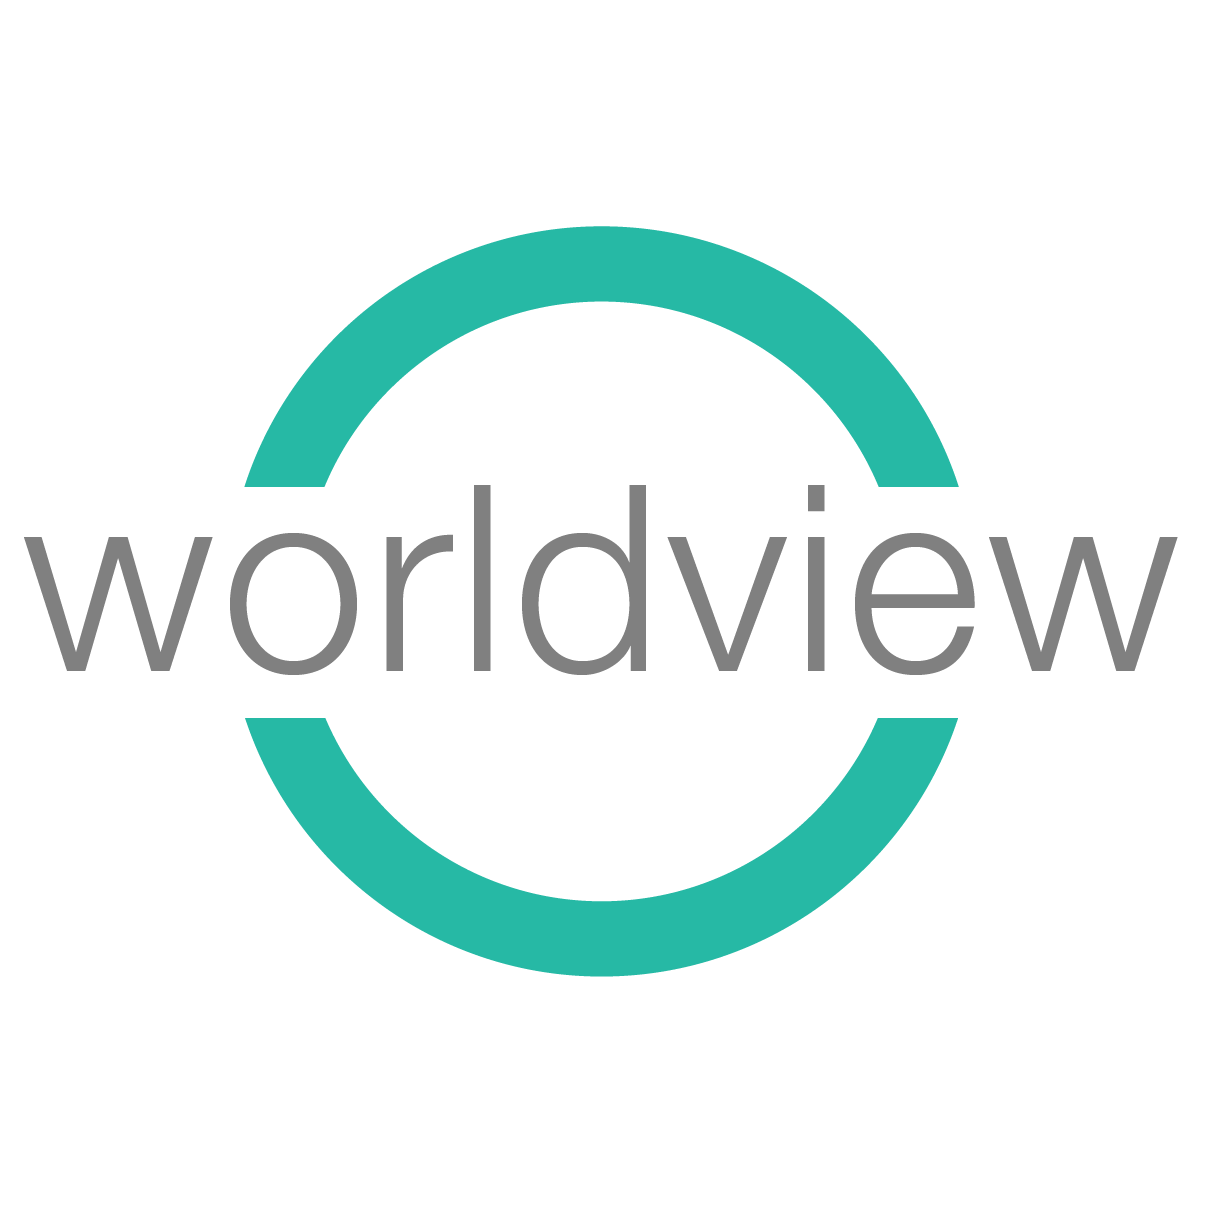 Worldview - Primary Logo.PNG